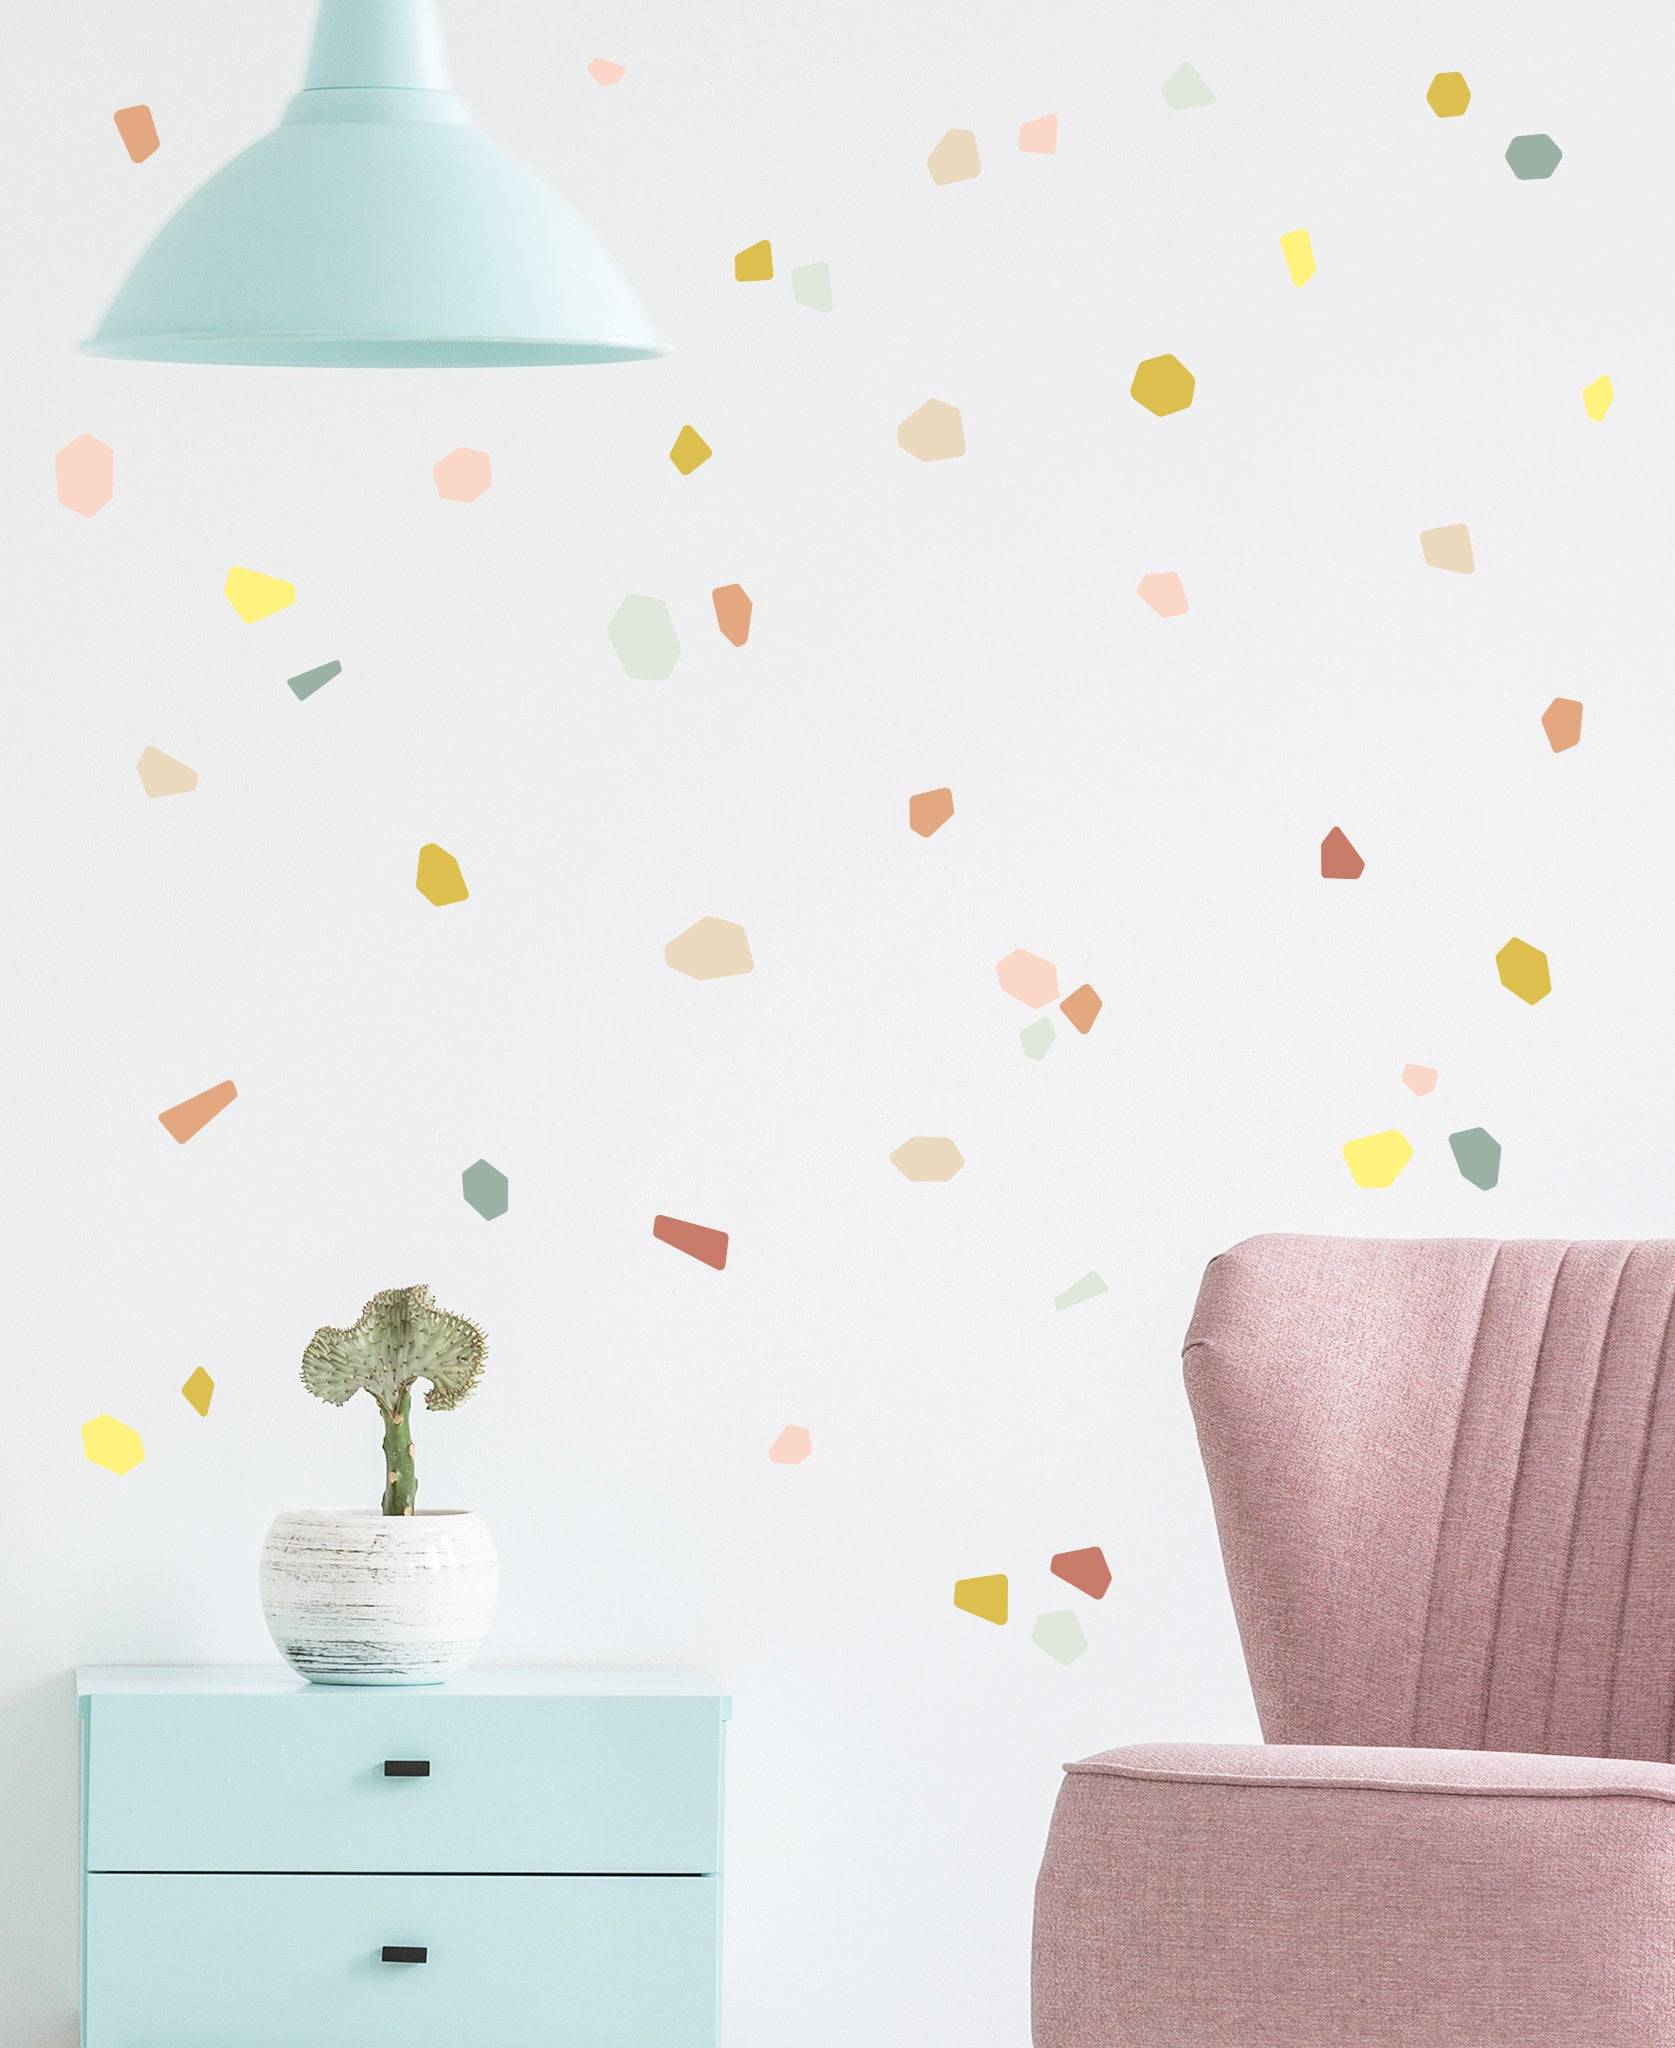 Terrazzo wall decals from Etsy shop Made by Sundays